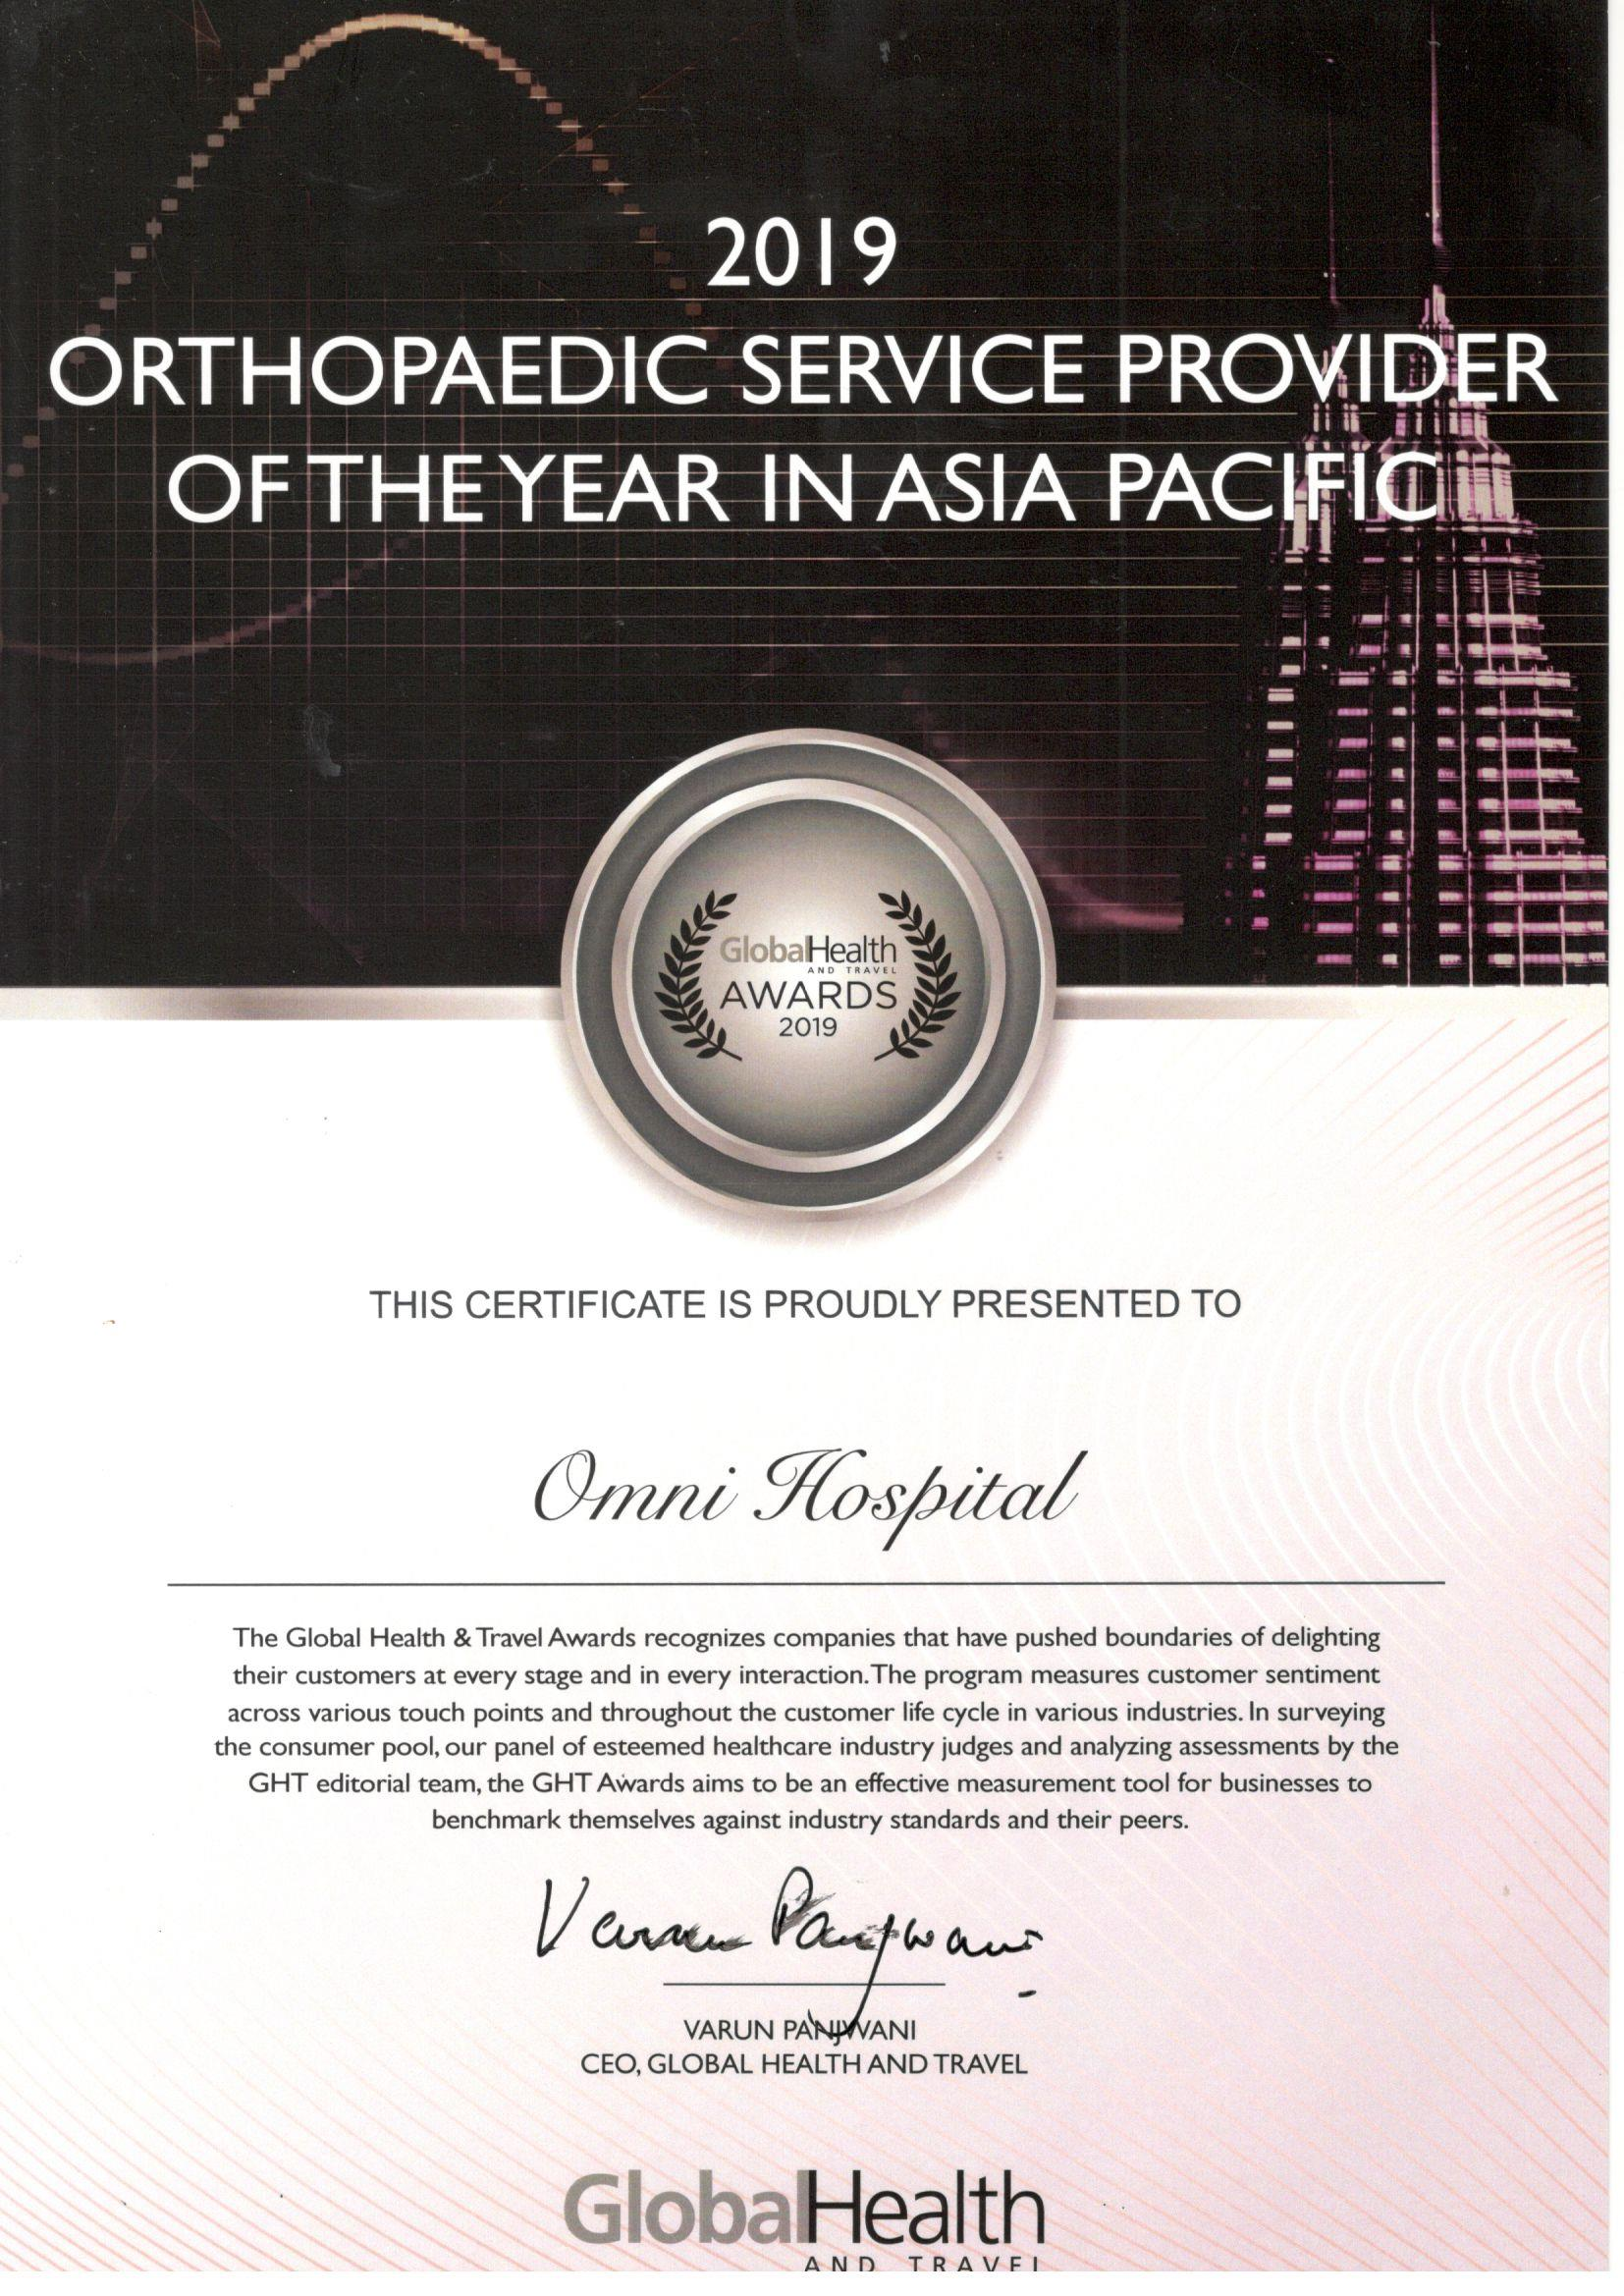 Orthopaedic Service Provider of The Year in Asia Pacific - 2019 APAC Healthcare & Medical Tourism Award